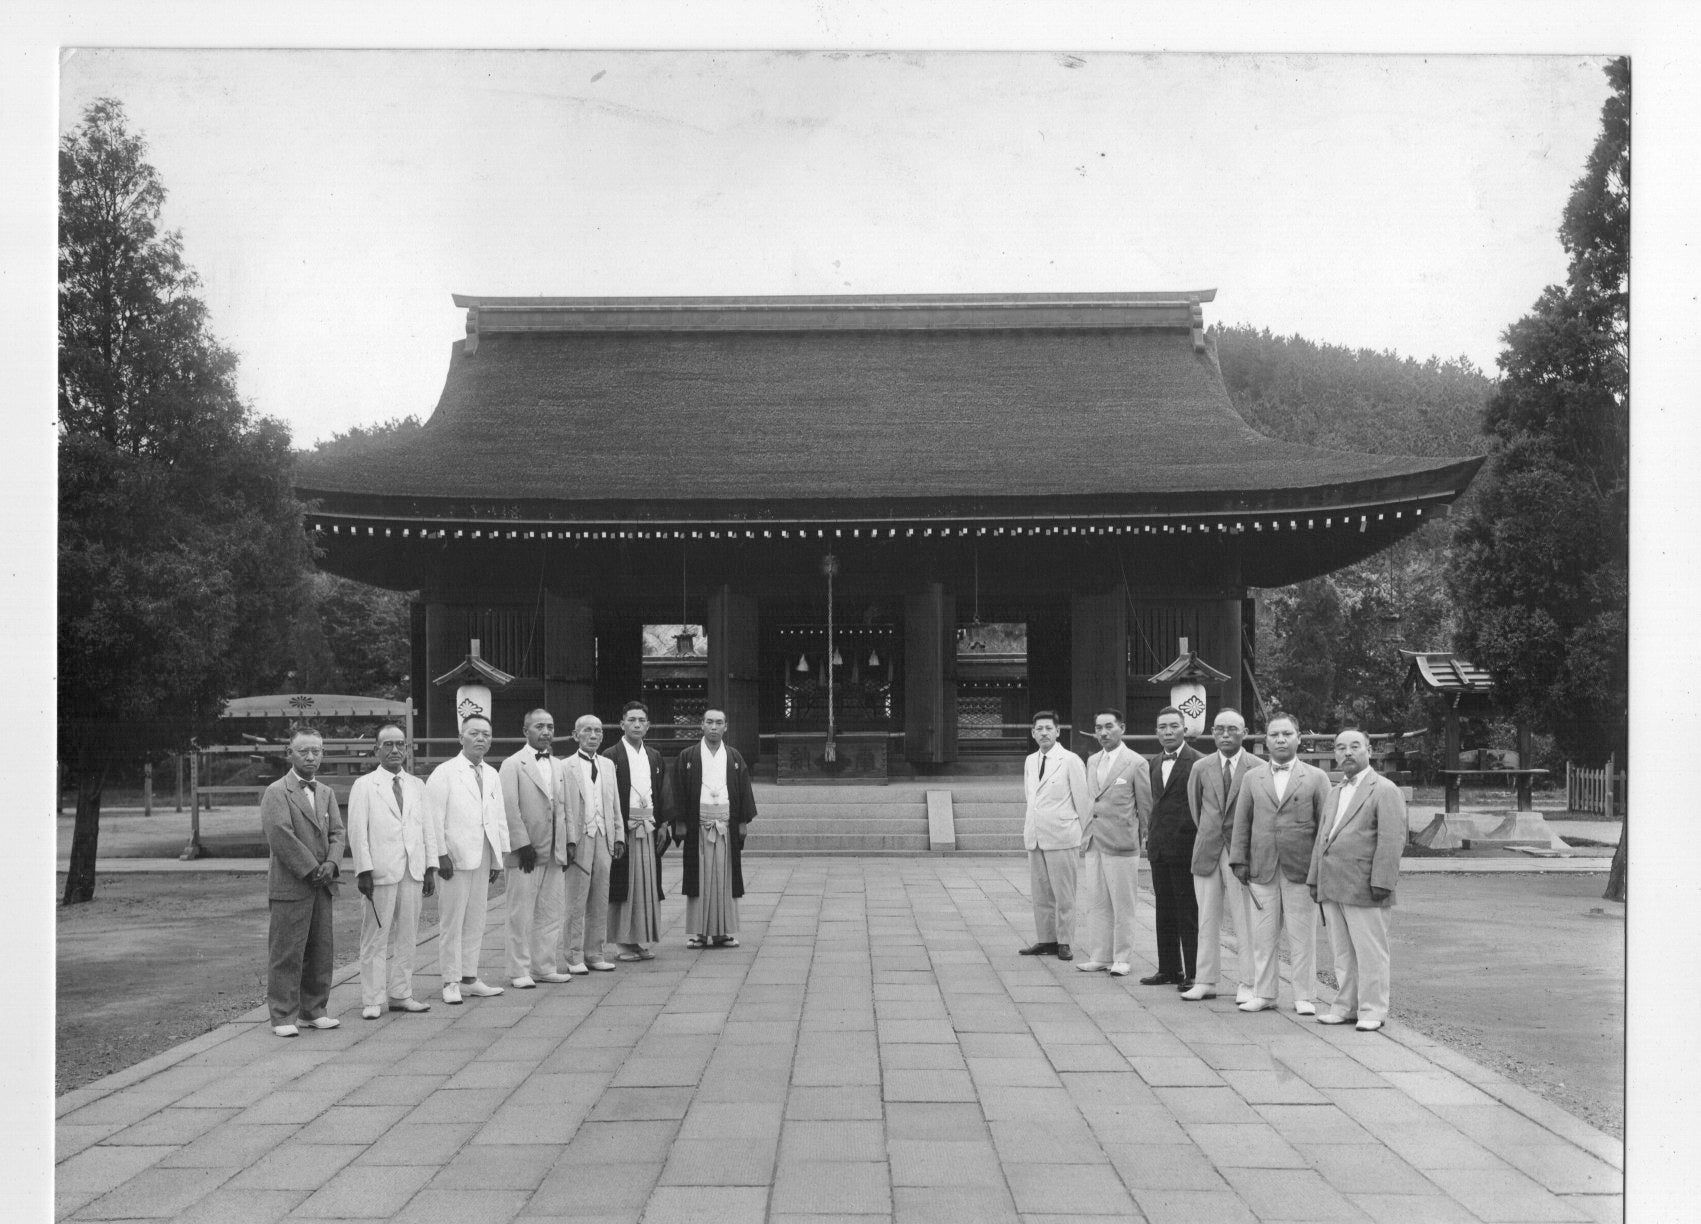 Vintage old black and white photo of a group of japanese men standing in front of a building 8 x 10 1 2